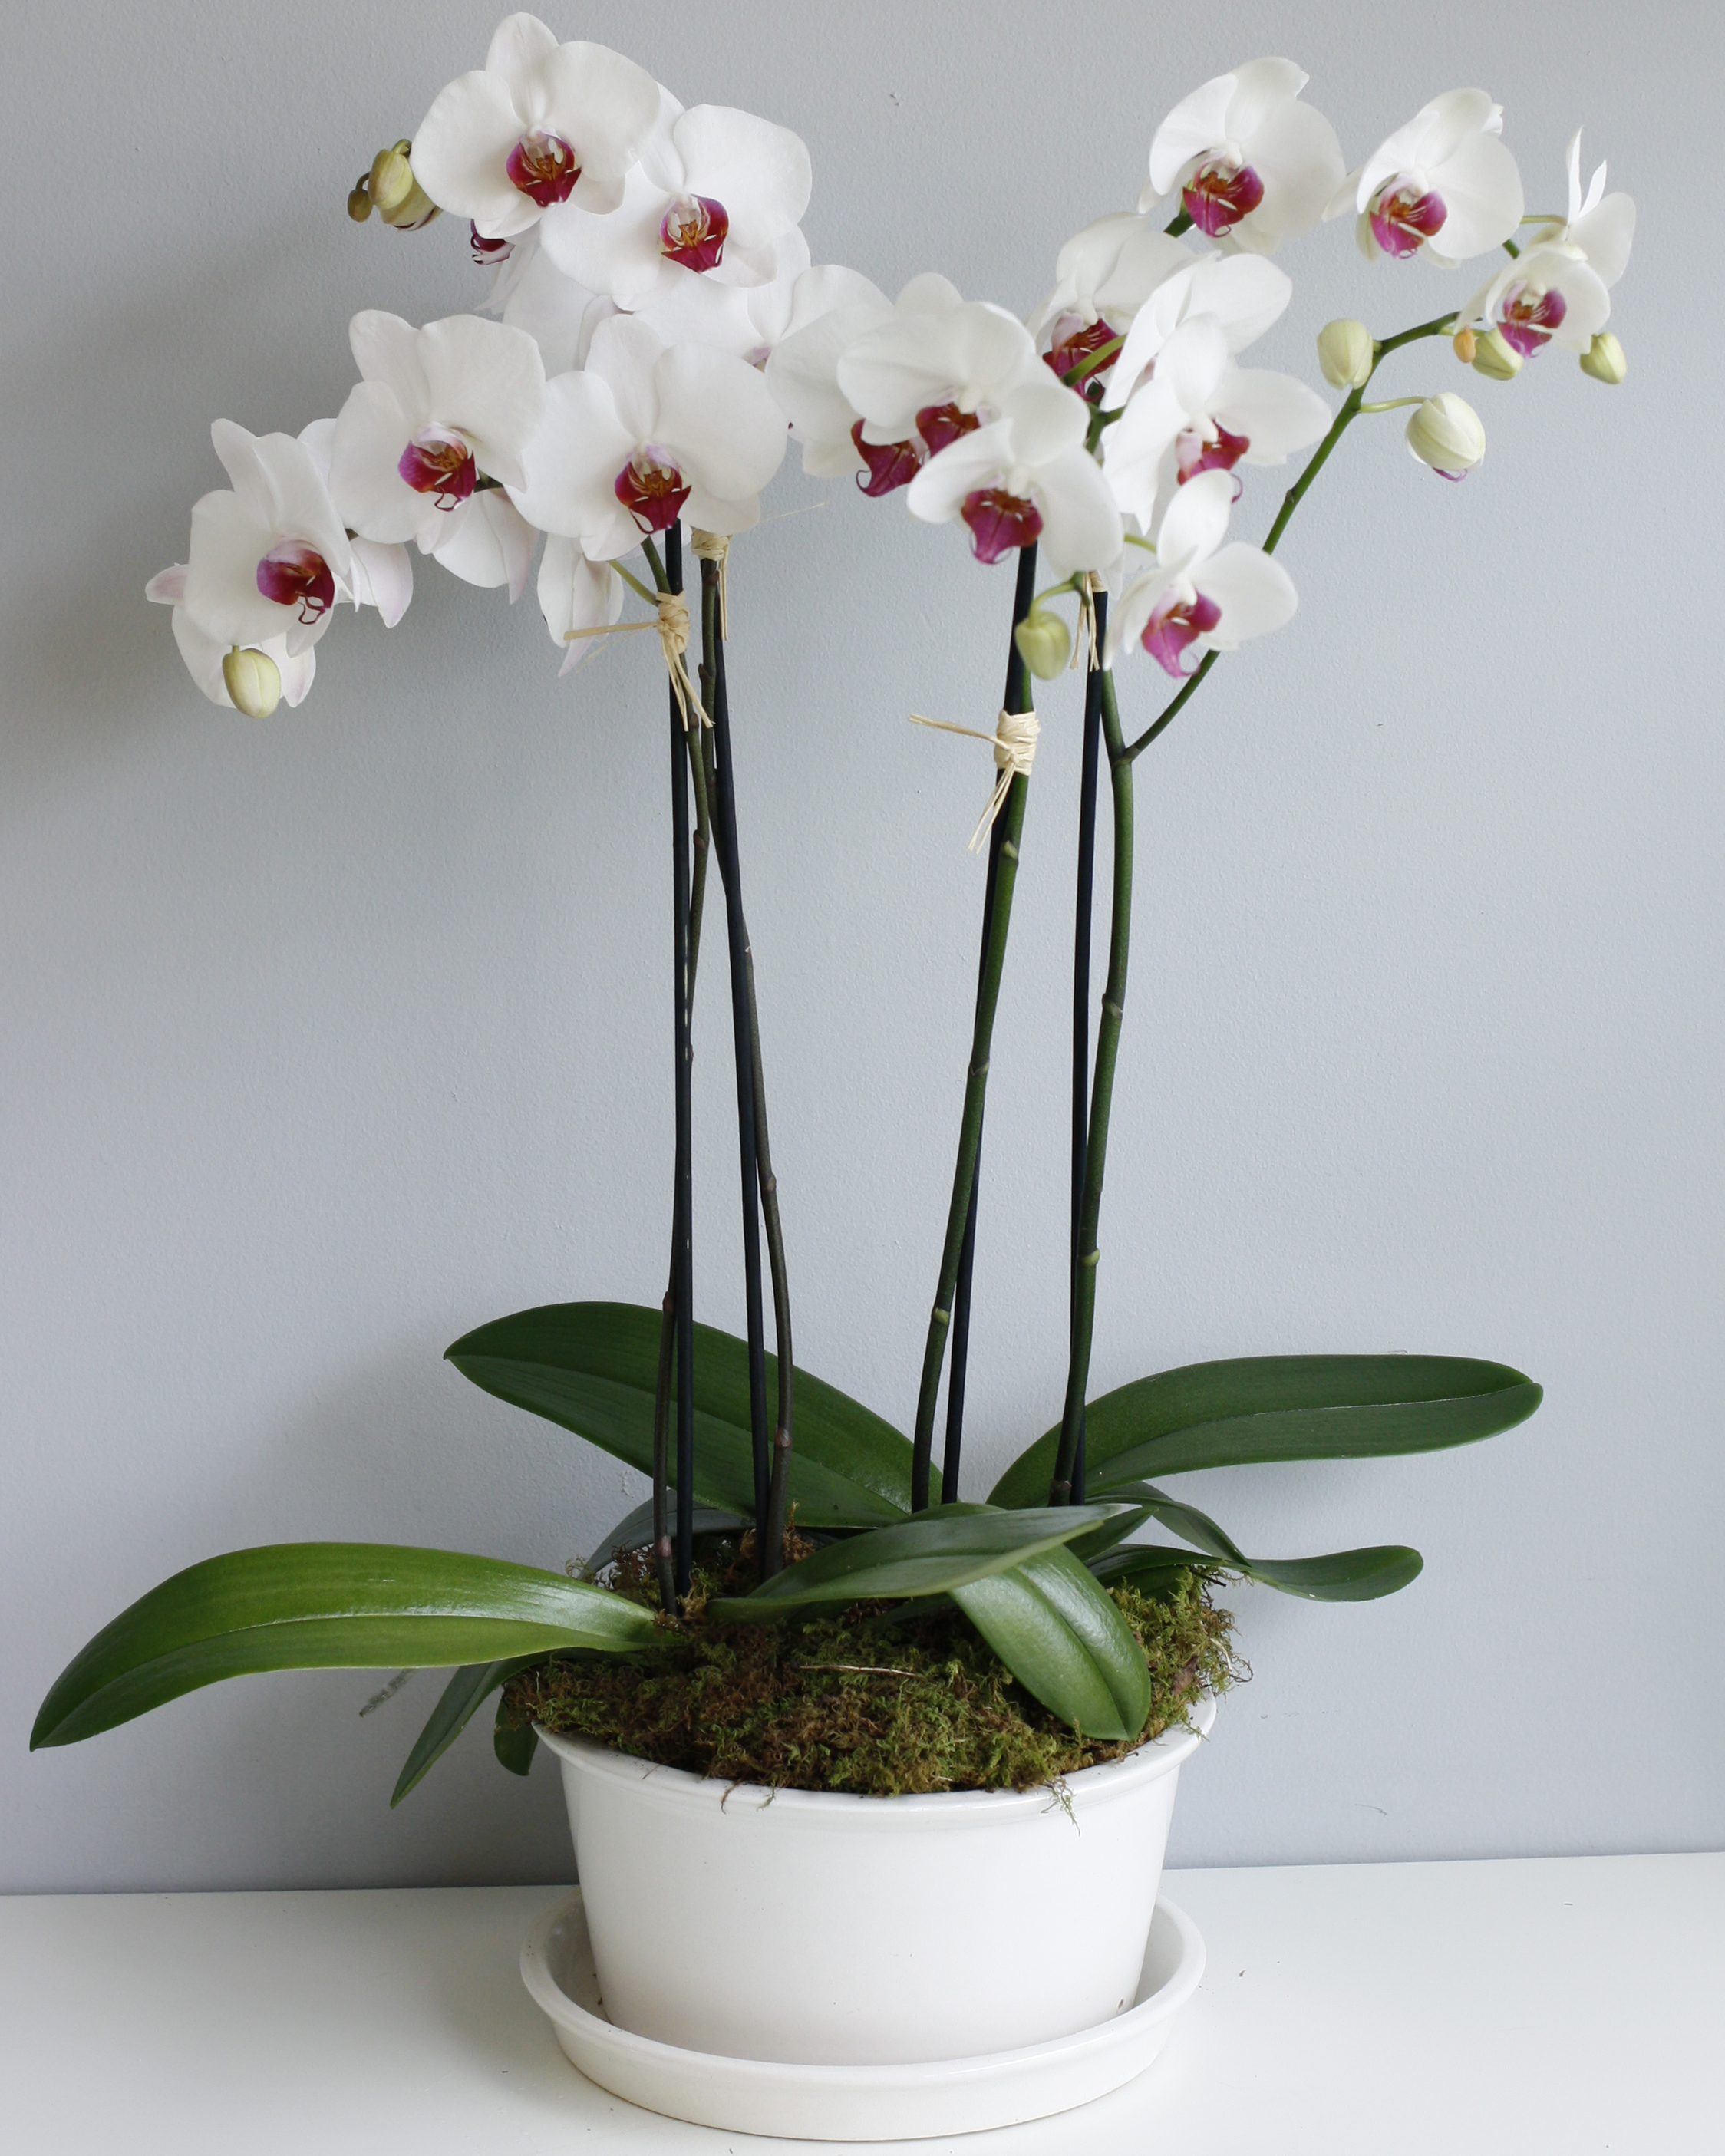 Harmony Orchid Plants - phaleonopsis orchids in modern white ceramic pot, perfect for a modern home or office space!